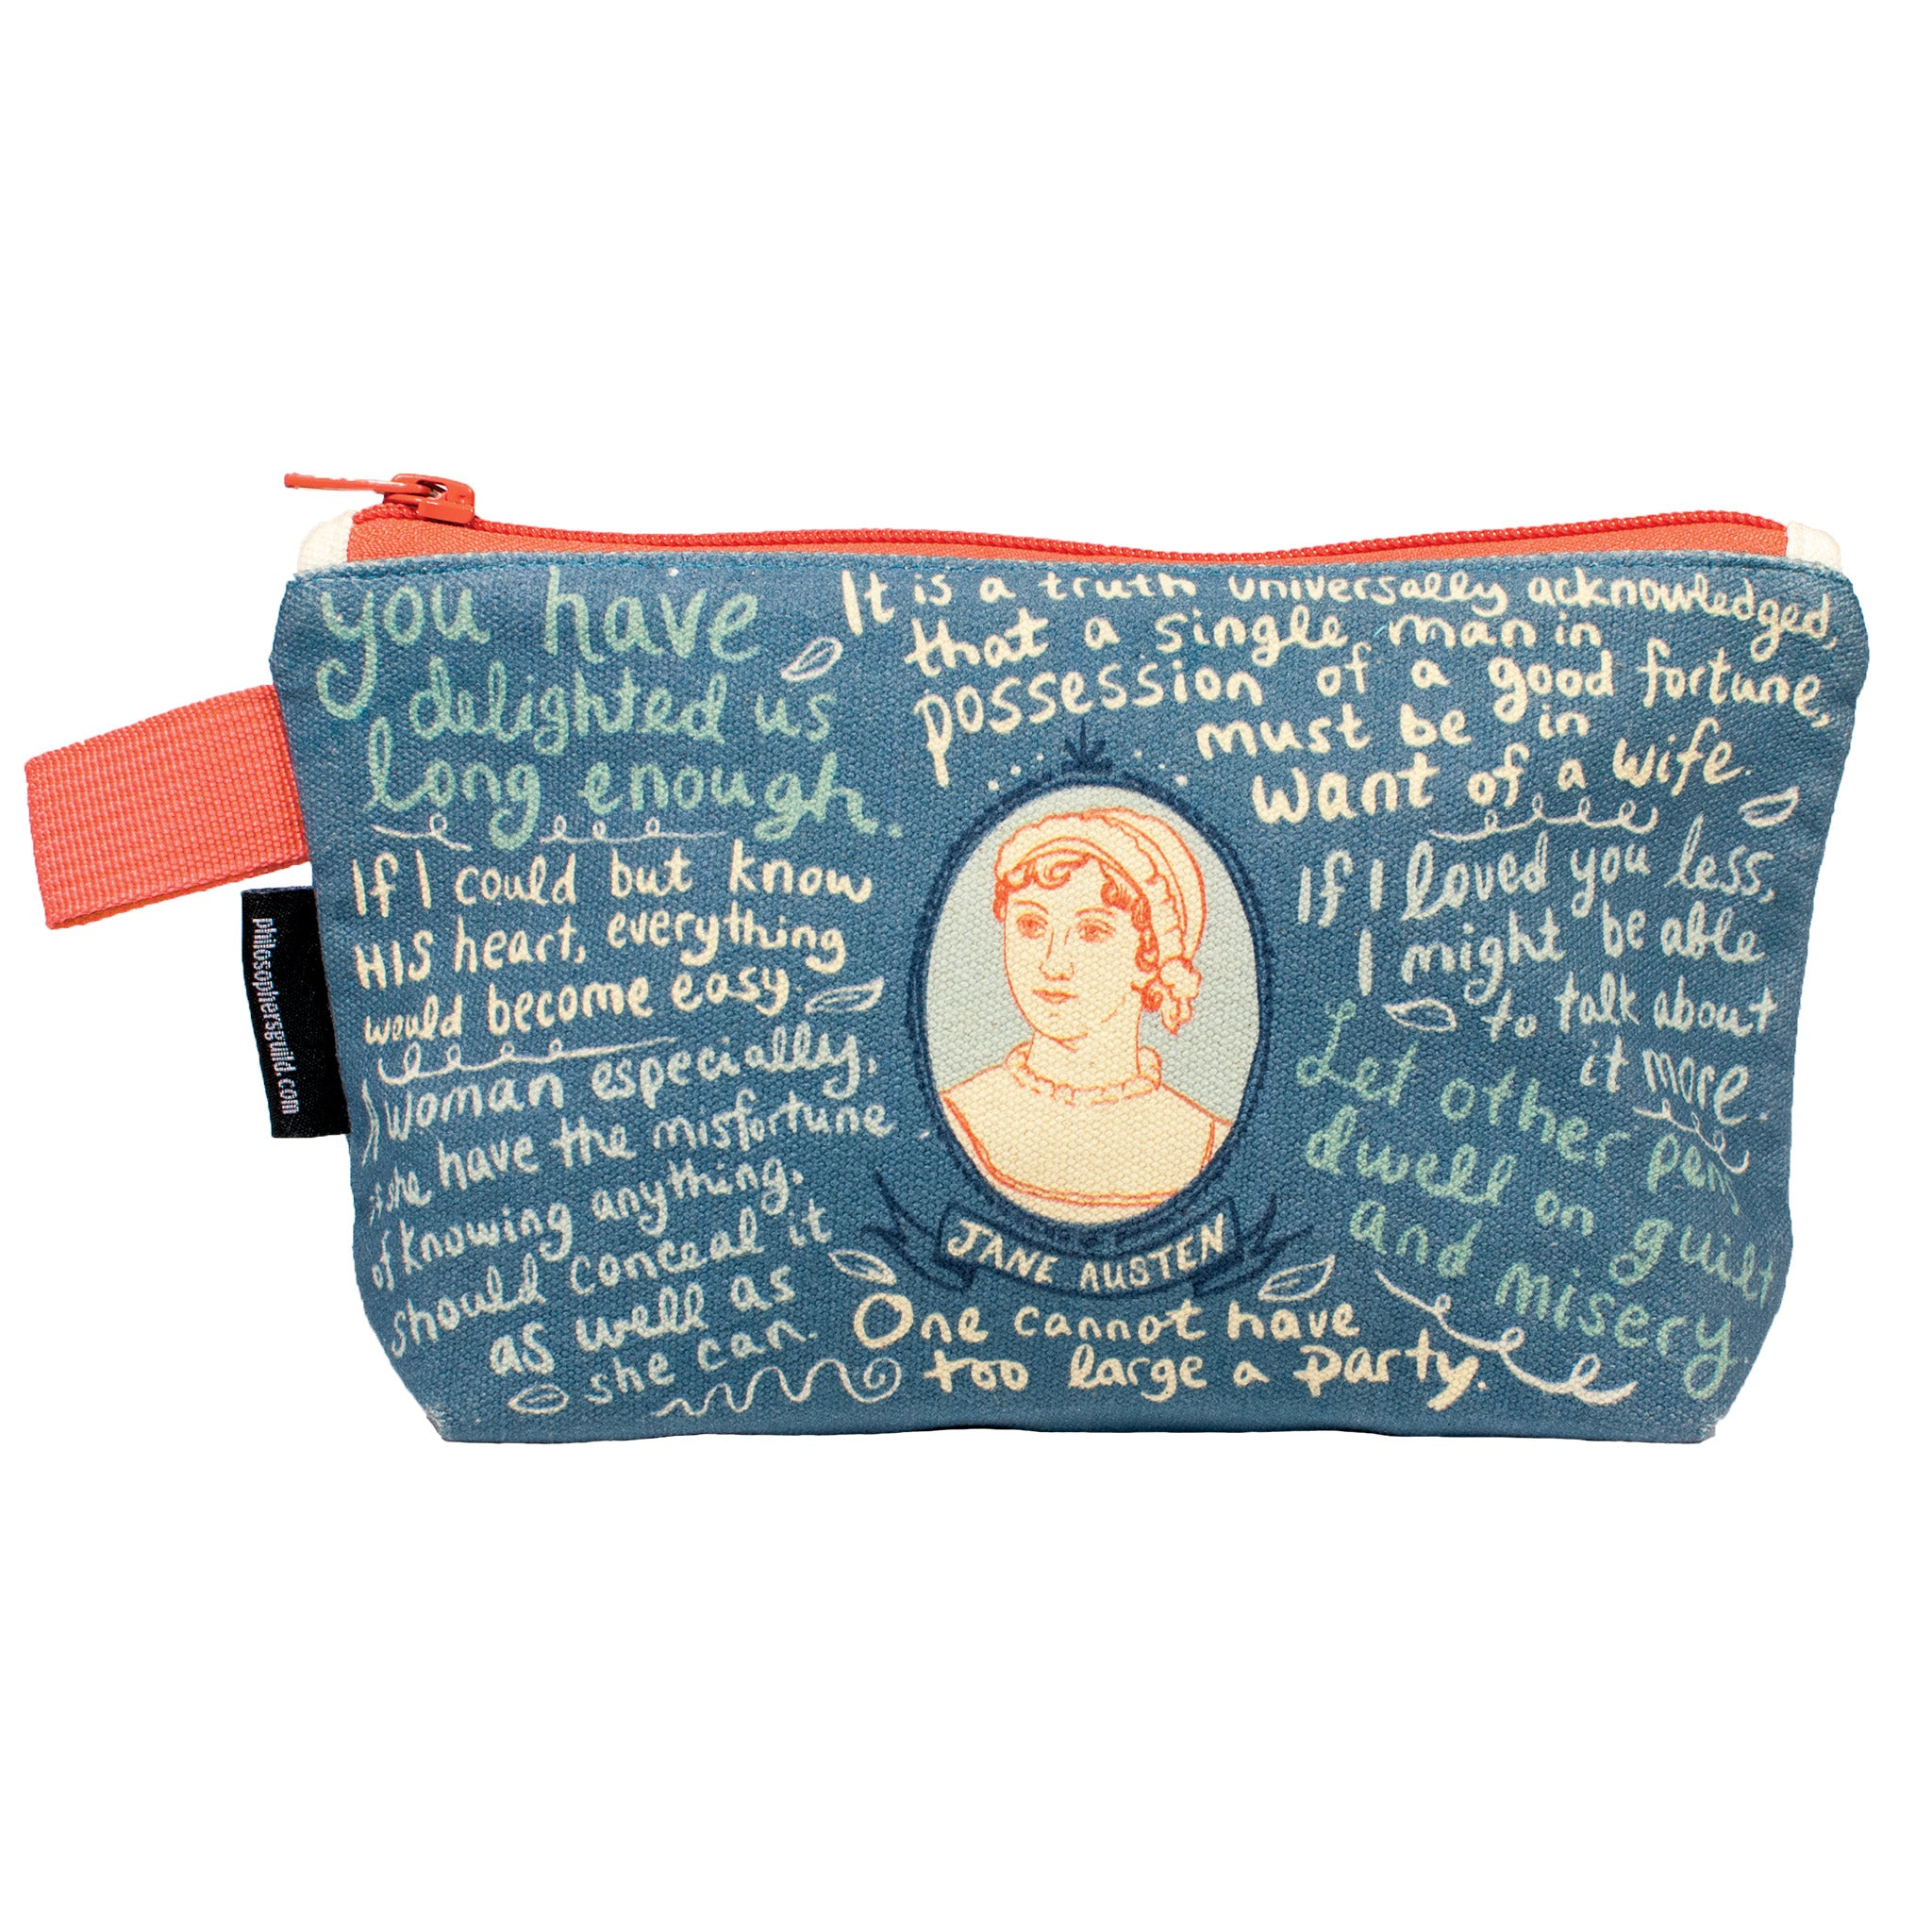 Jane Austen Bag - The Unemployed Philosophers Guild